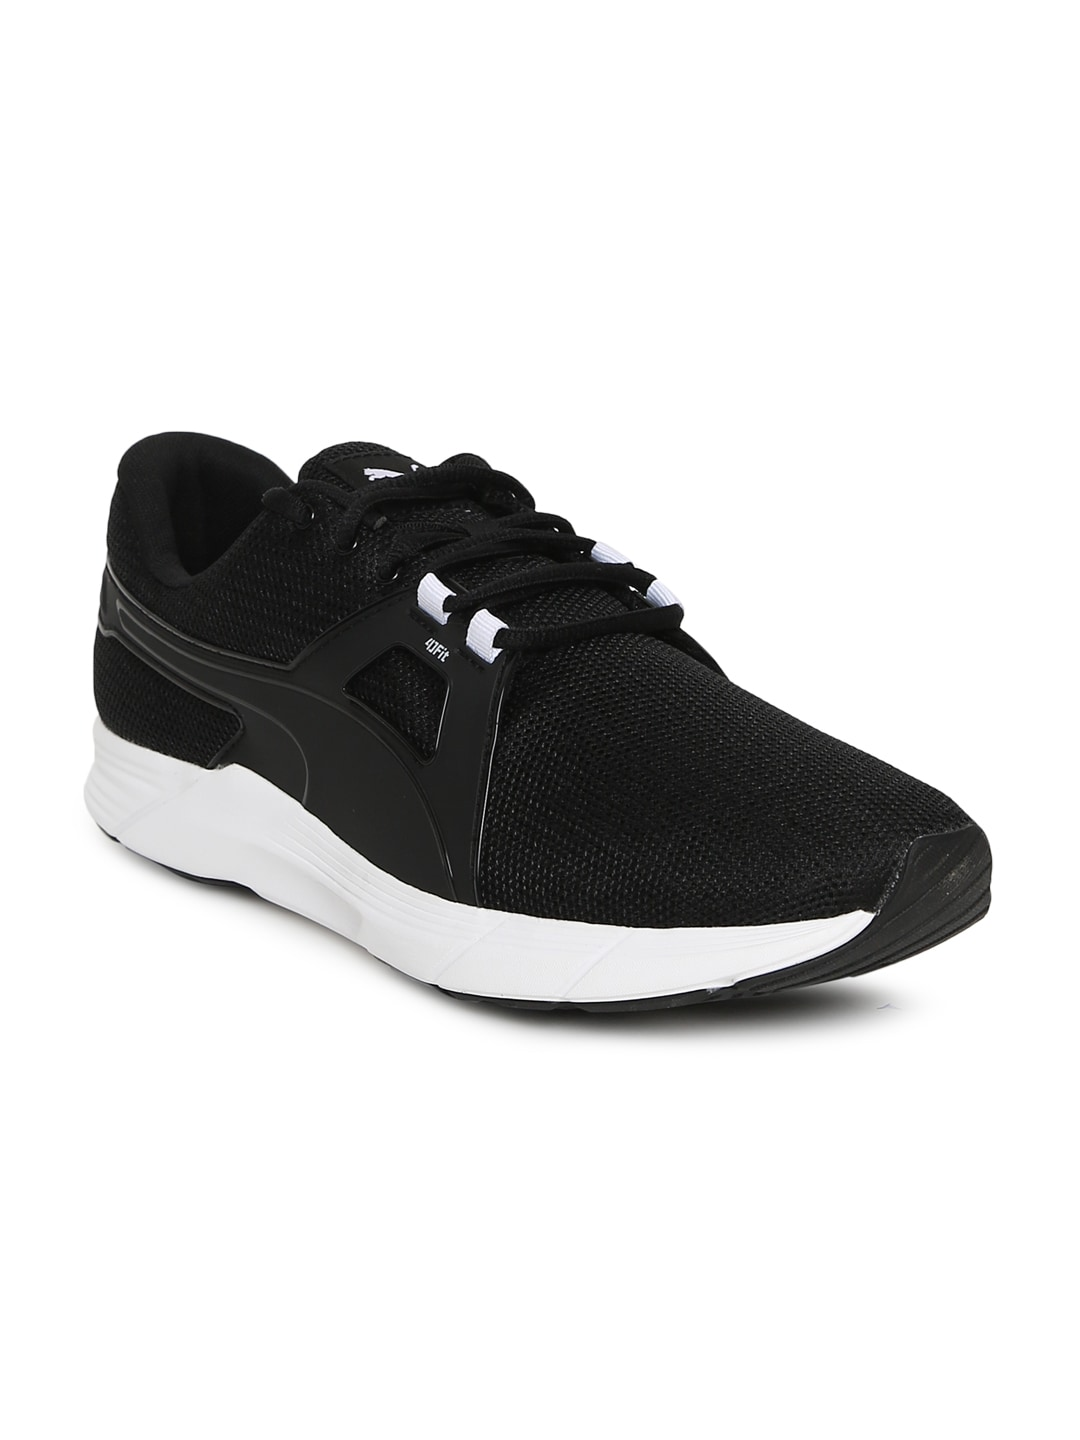 Puma Axis Xt Tops Sports Shoes - Buy Puma Axis Xt Tops Sports Shoes online  in India 231fef26c4